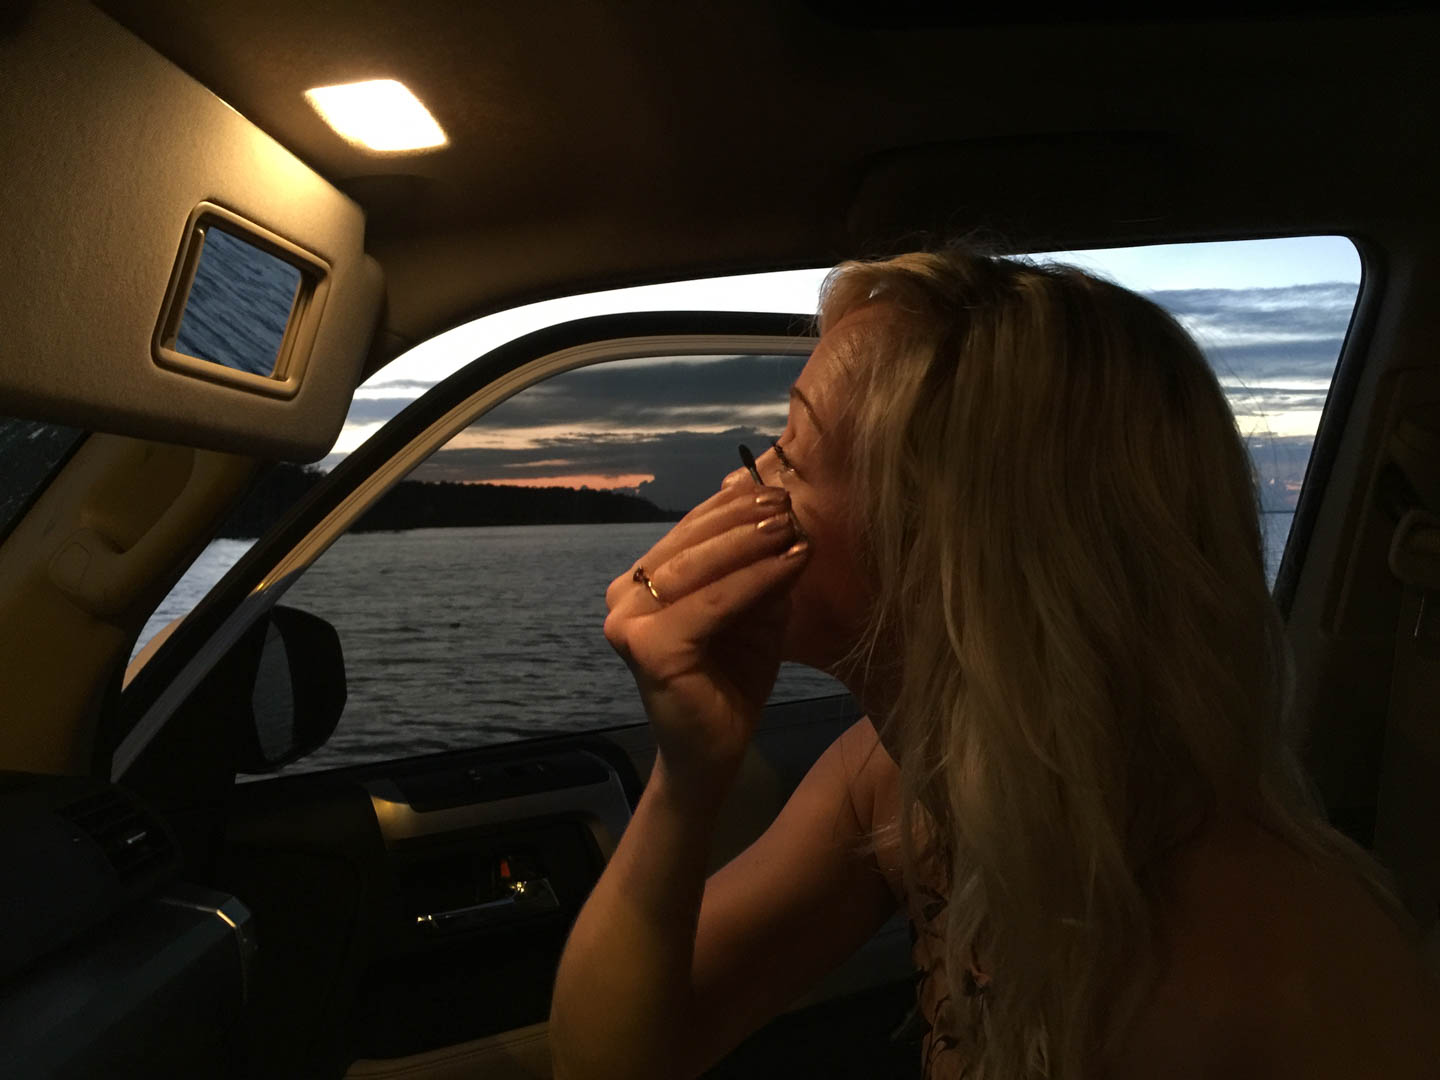 Girl applying eyeliner while riding on a ferry.